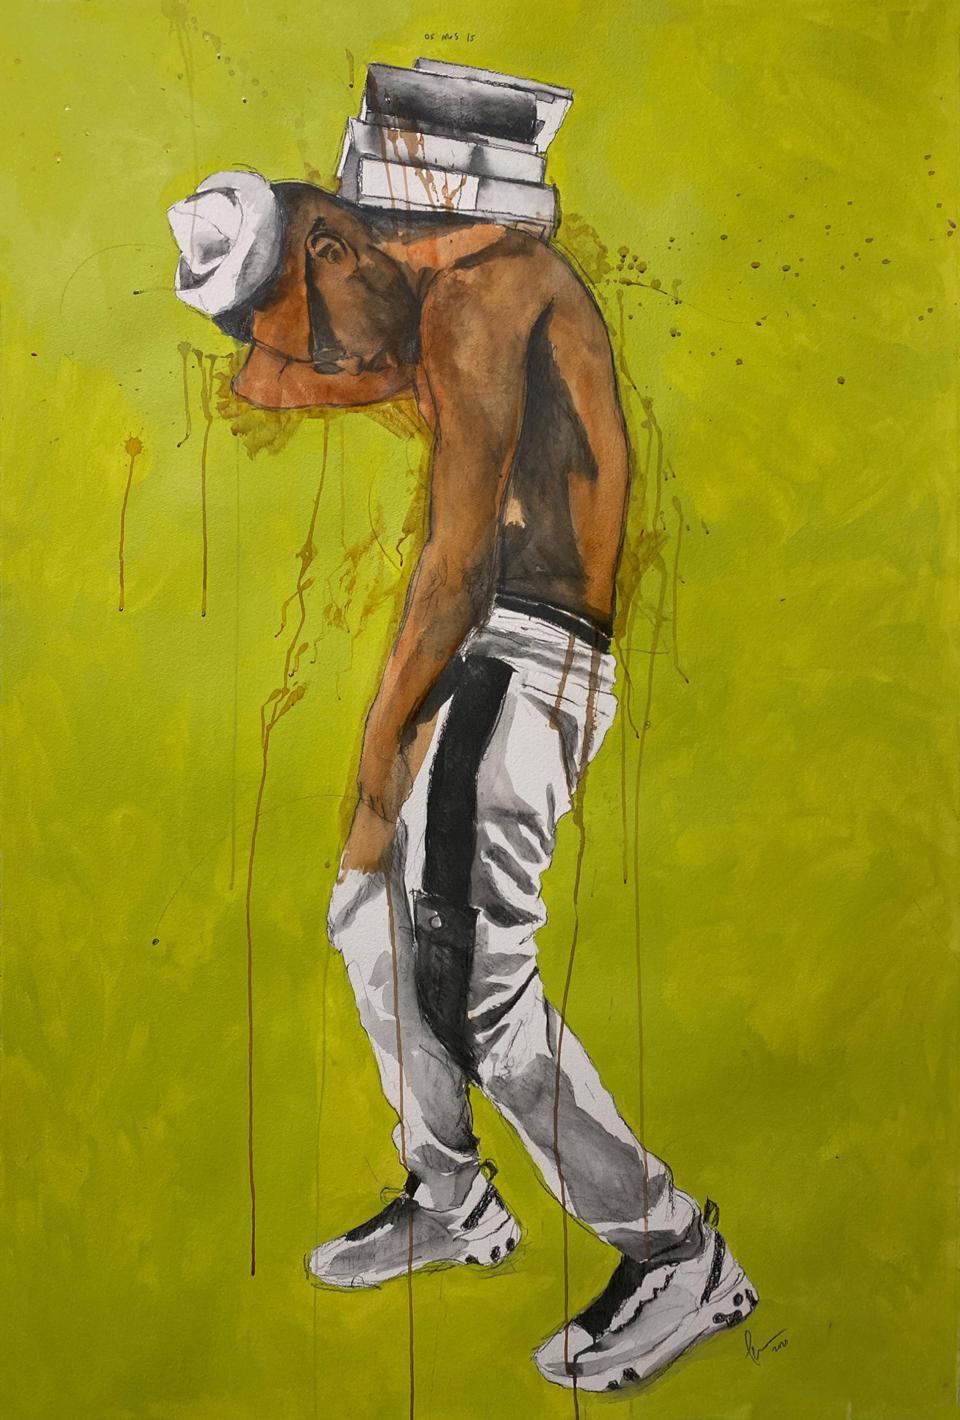 Painting of Afro-caribbean man carrying books on his back